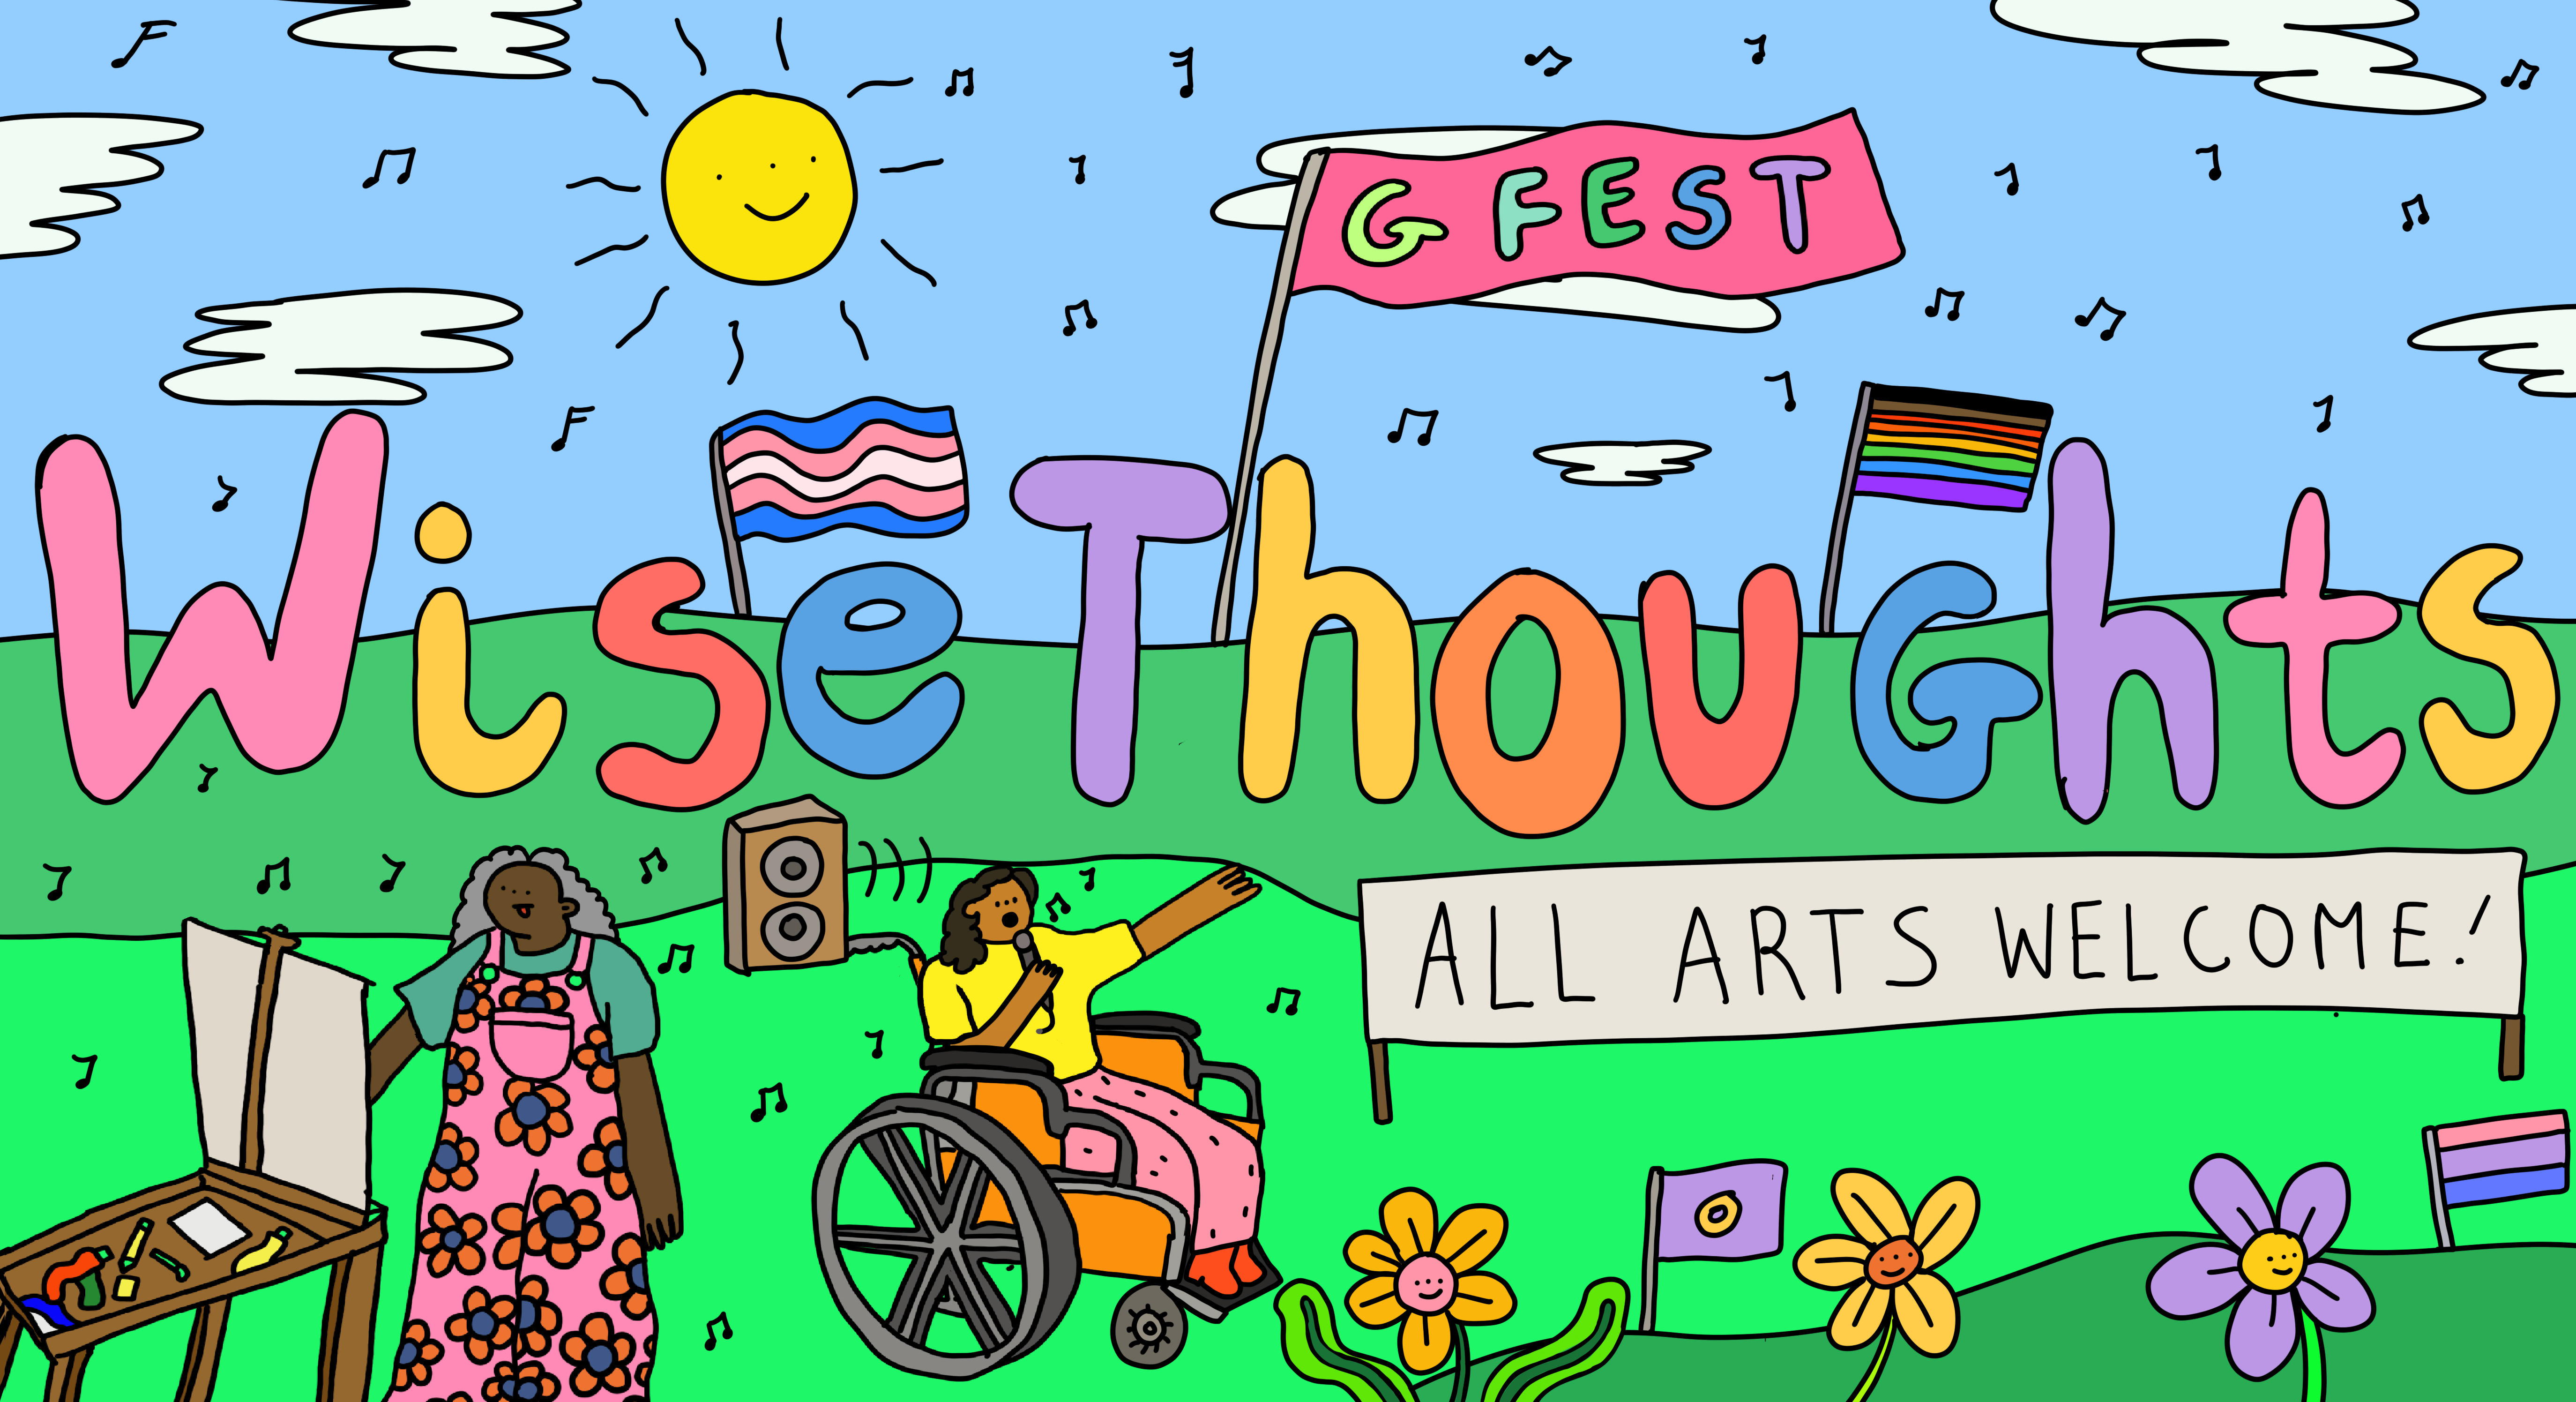 Wise Thoughts' LGBT+ arts festival, GFEST (Wise Thoughts illustration by artist Wednesday)